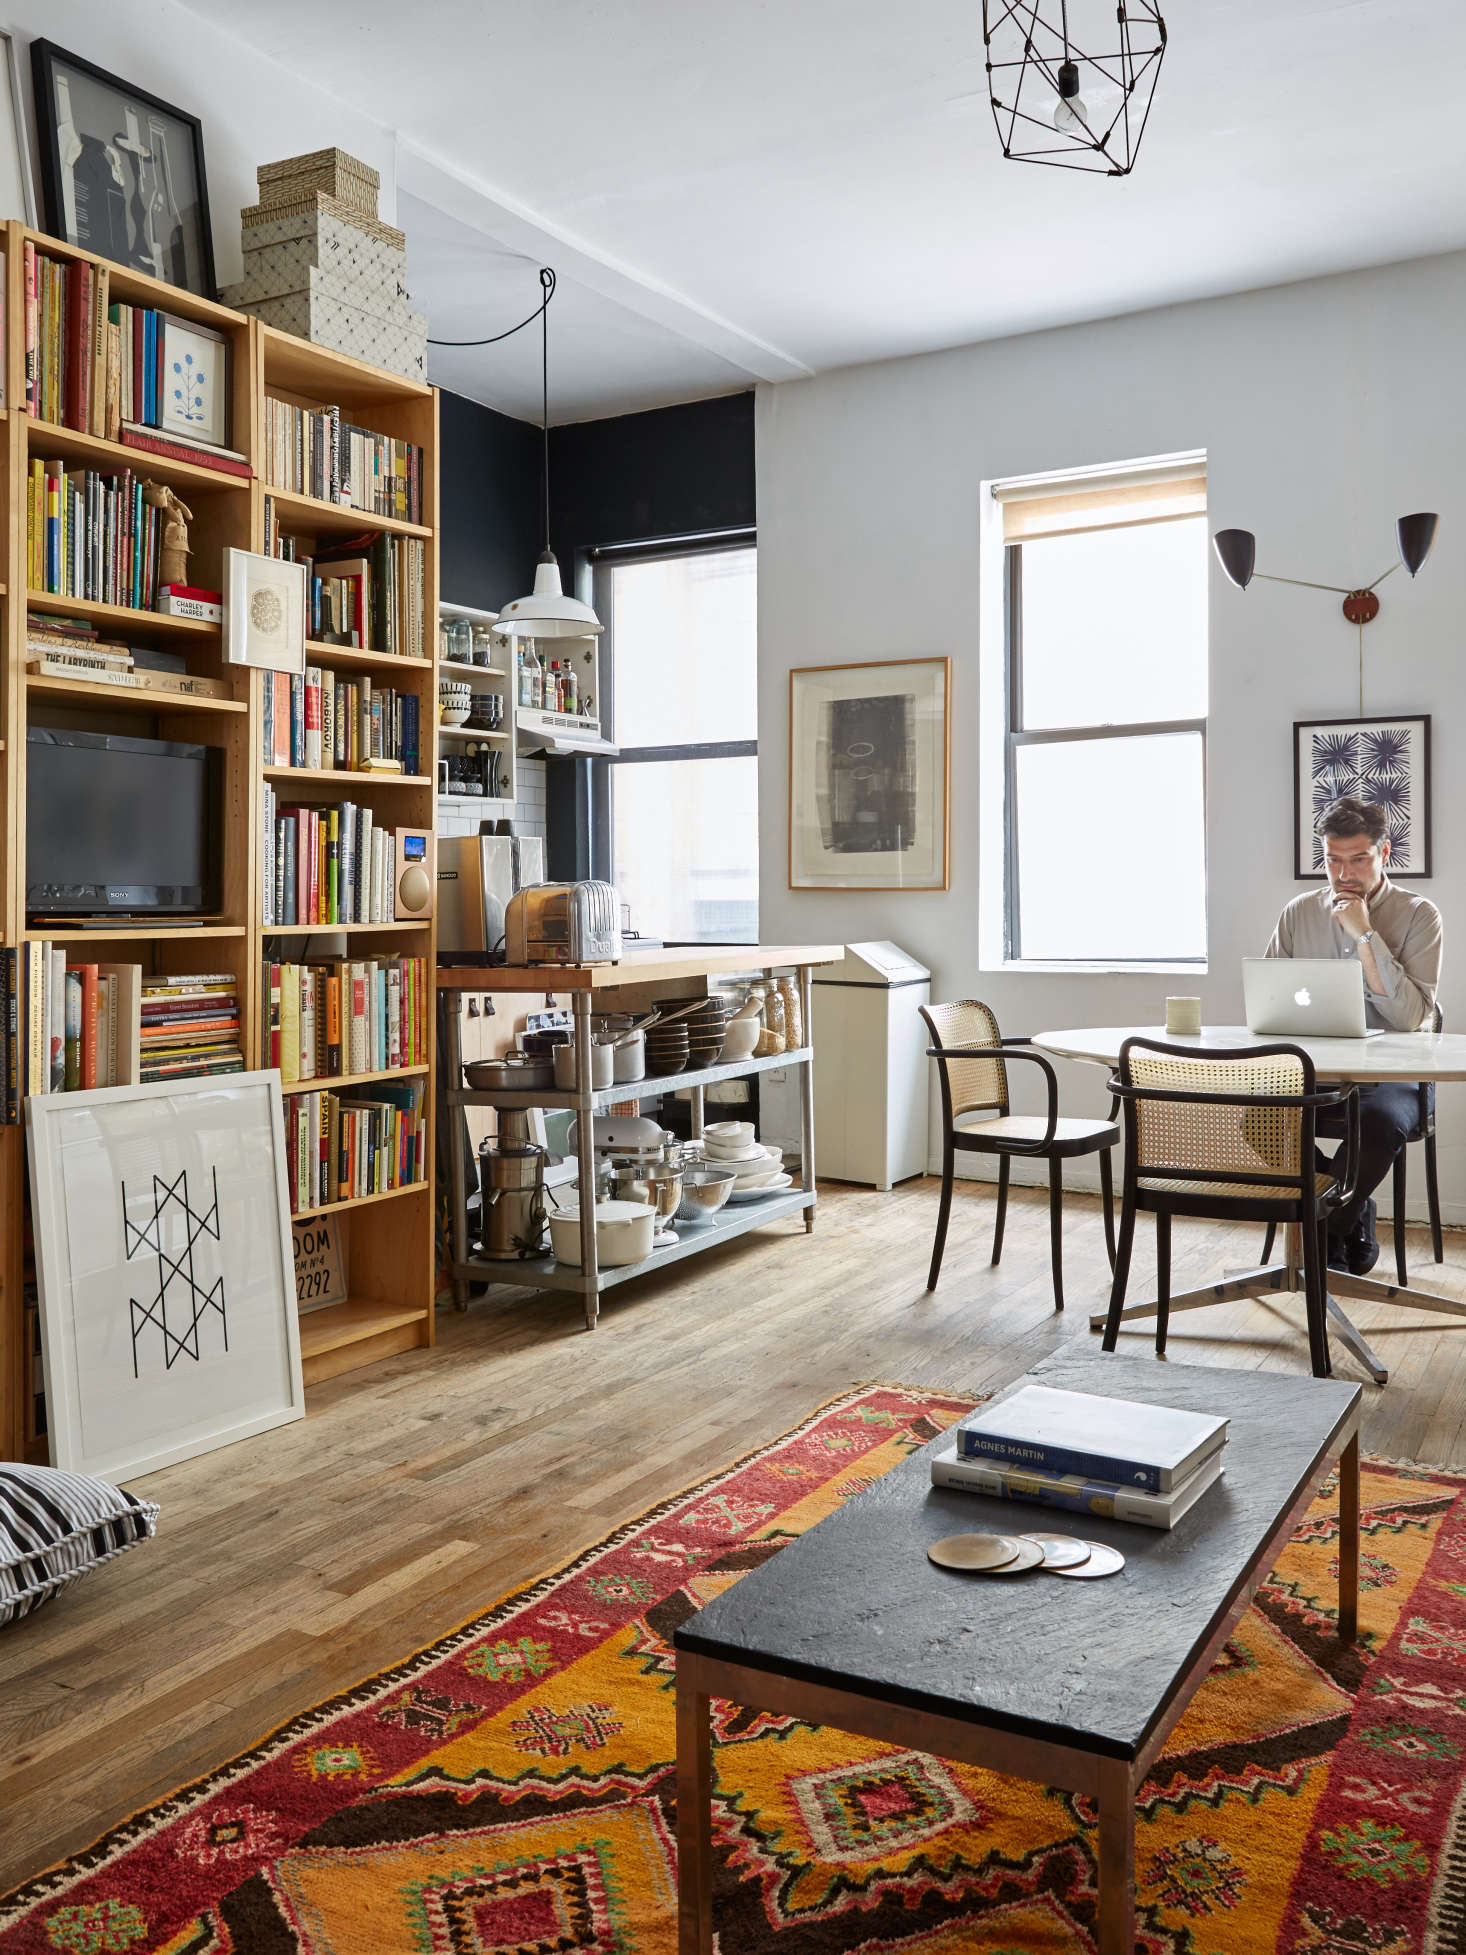 Roman Luba at home in his DIY remodeled NYC apartment | Kate Sears photo